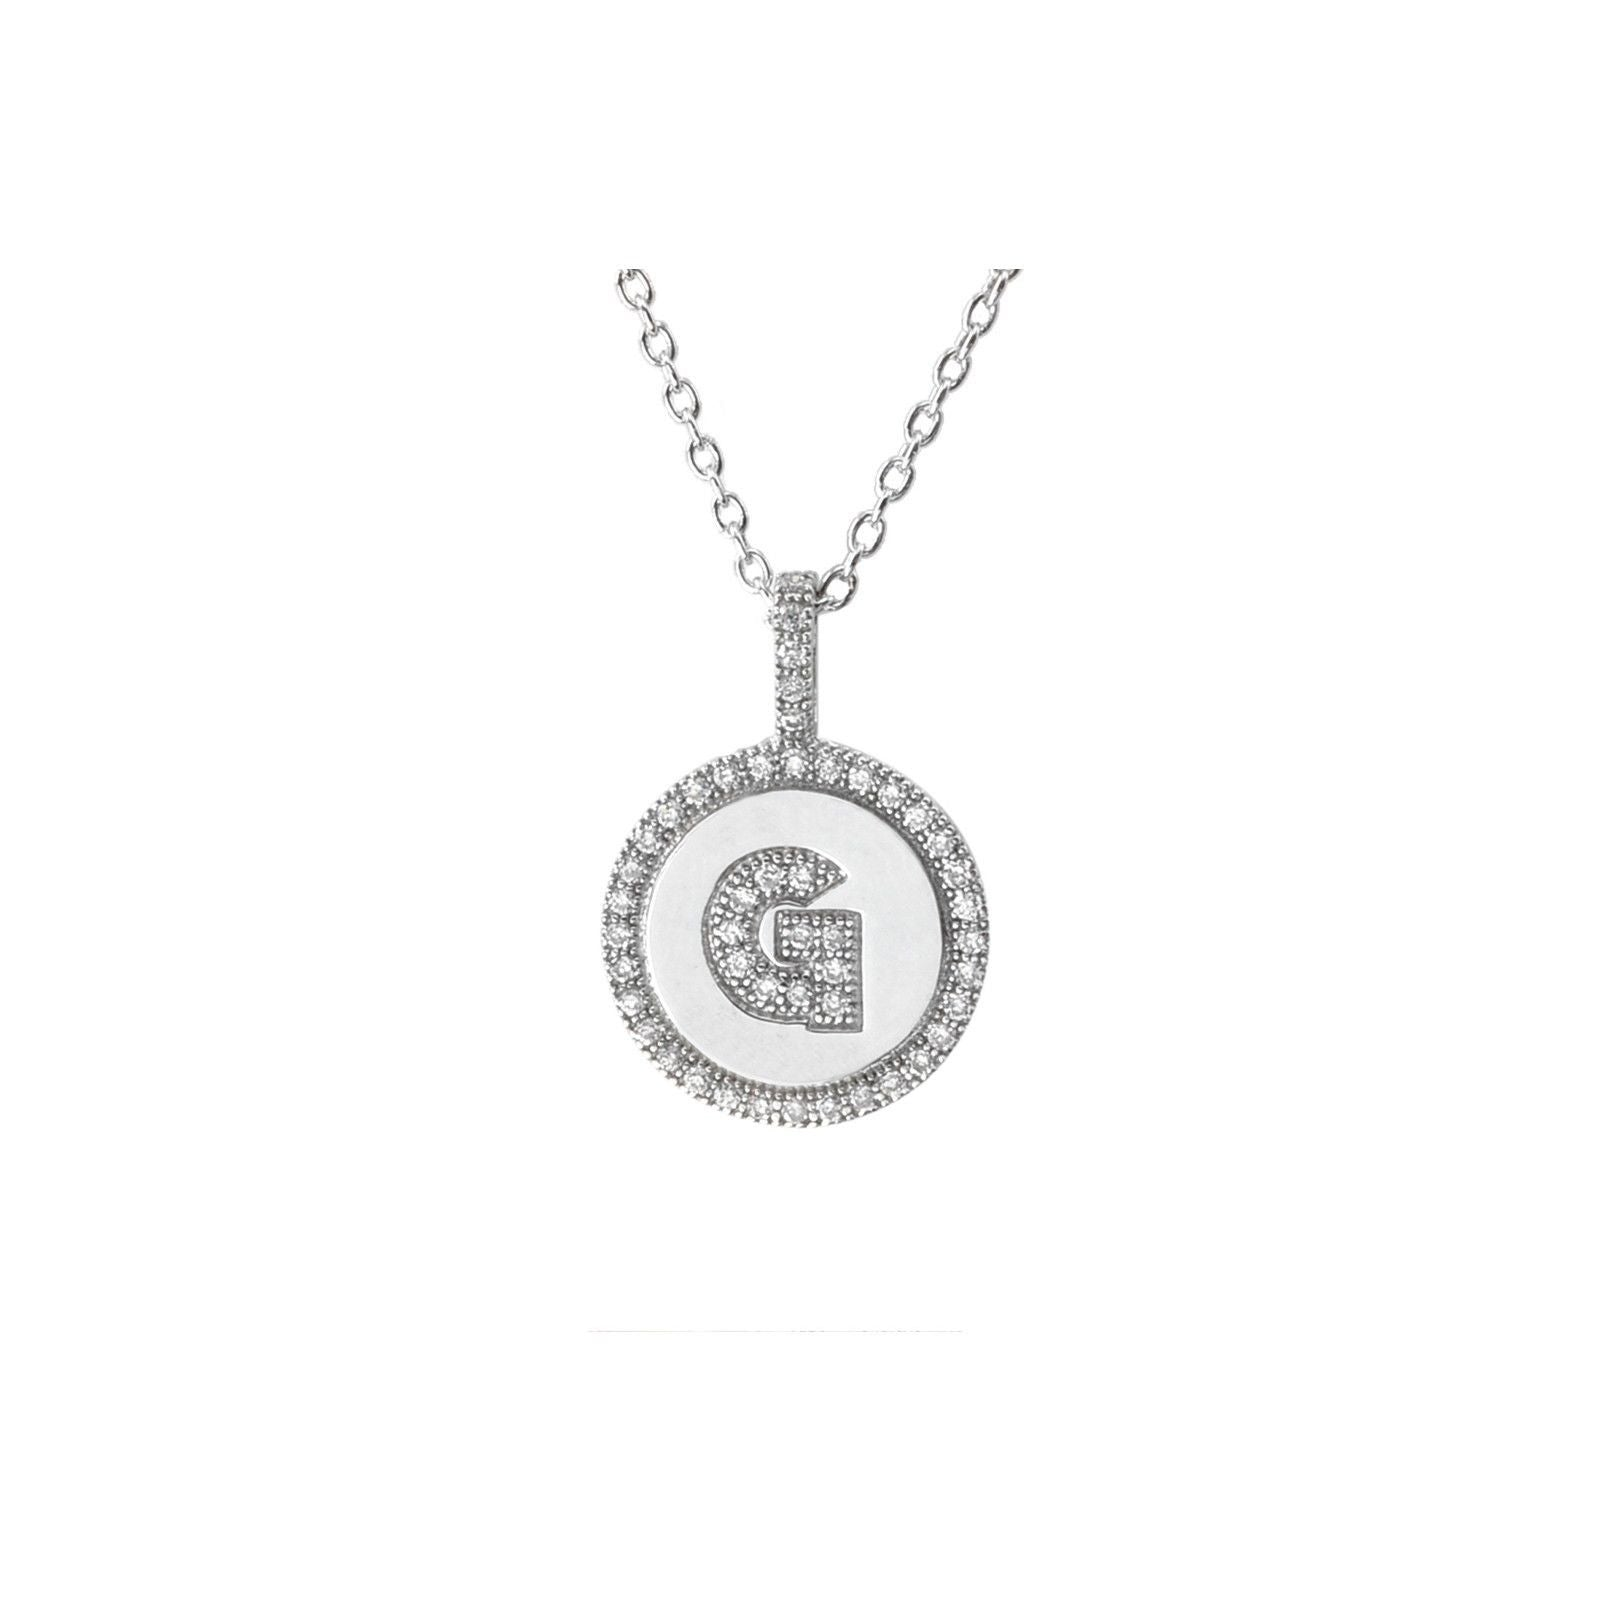 zoom necklaces suspended pendant with cubic sterling simply infinity jewellery necklace pave silver zirconia